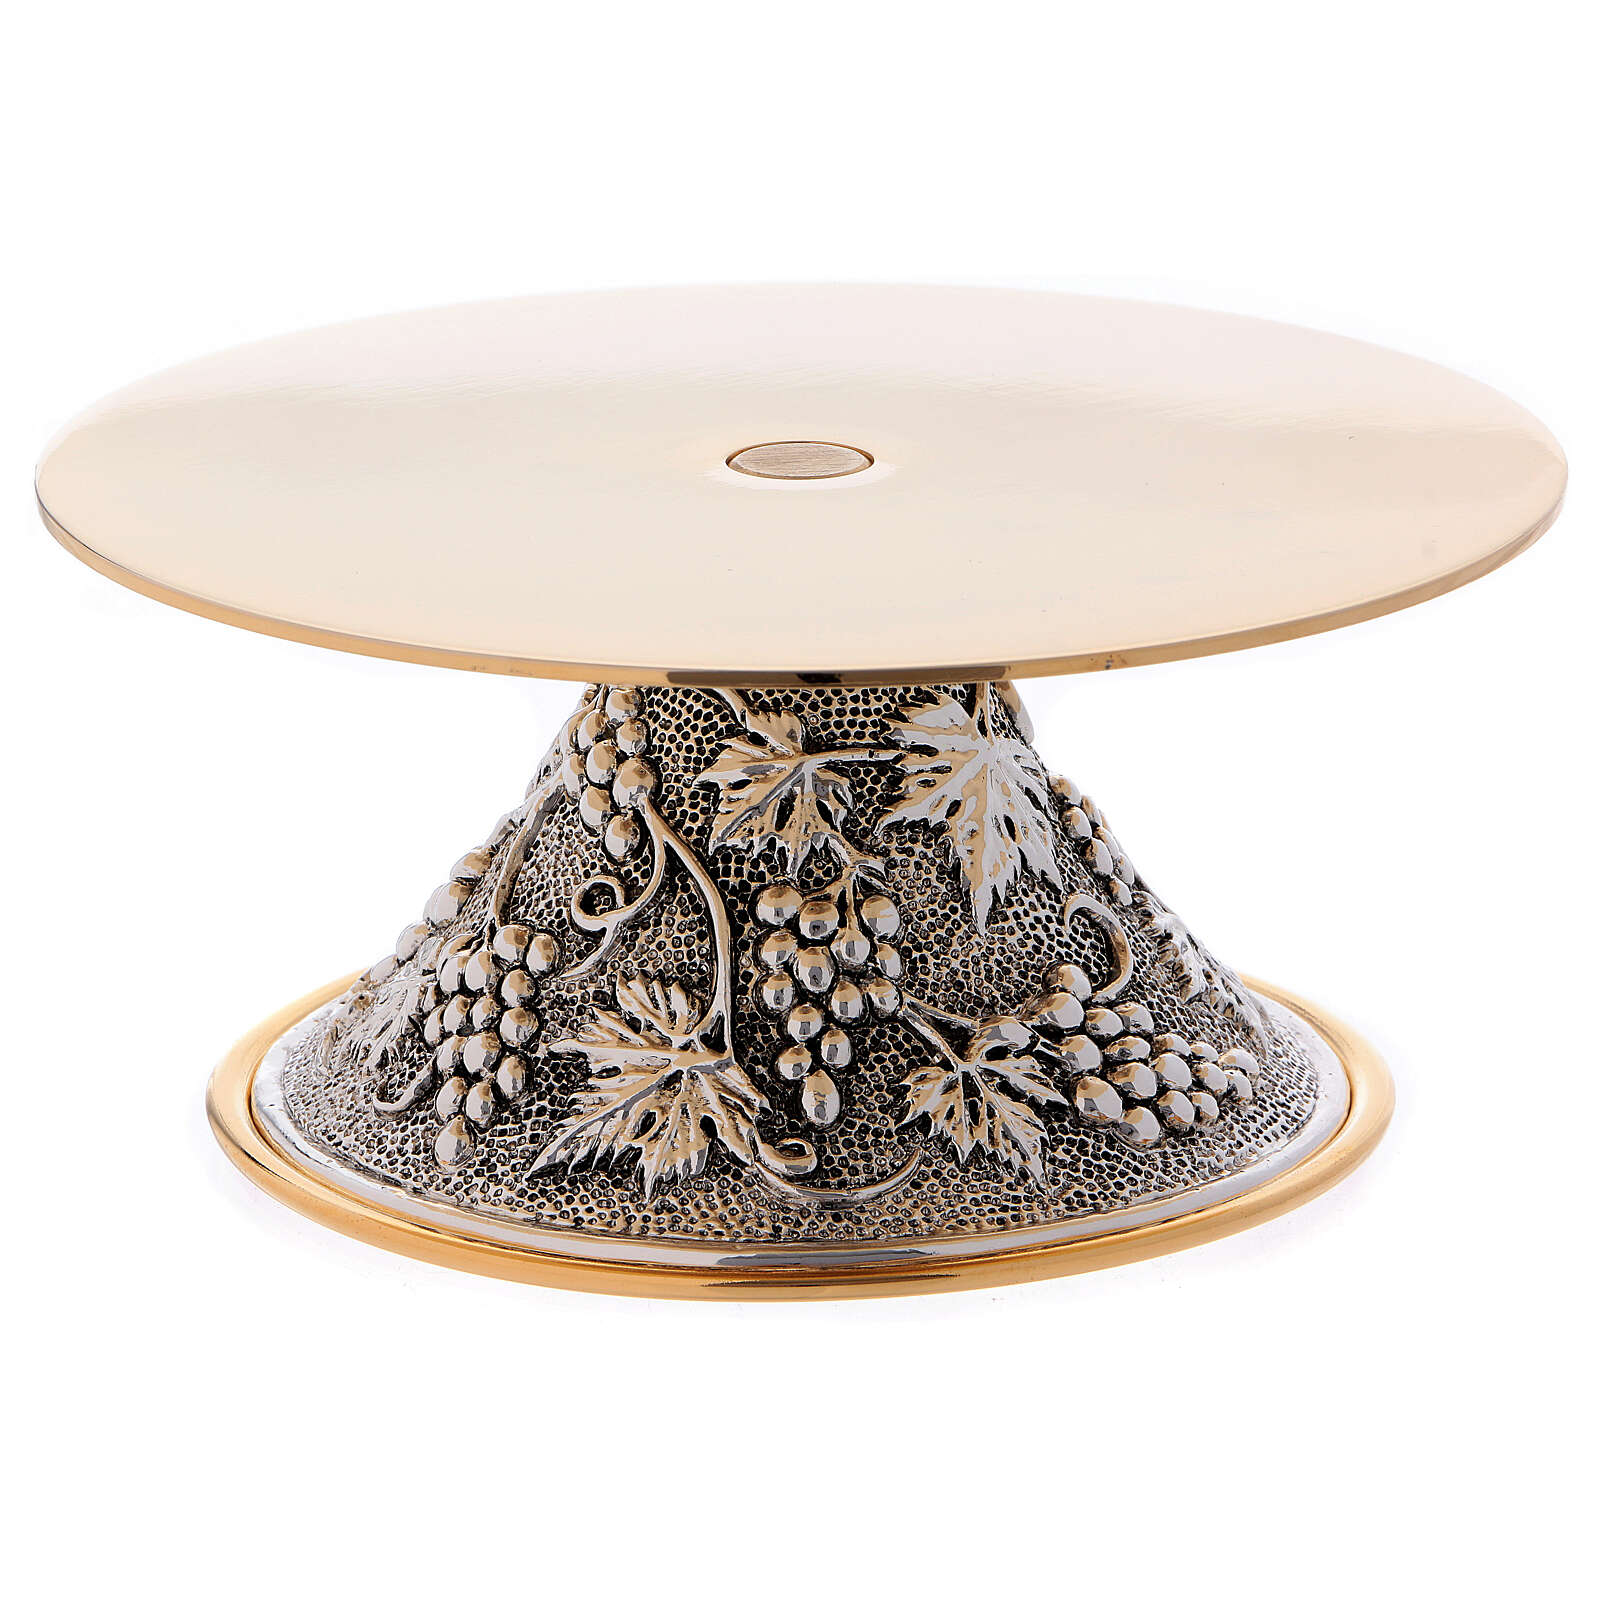 Monstrance stand round base with grapes decoration 4